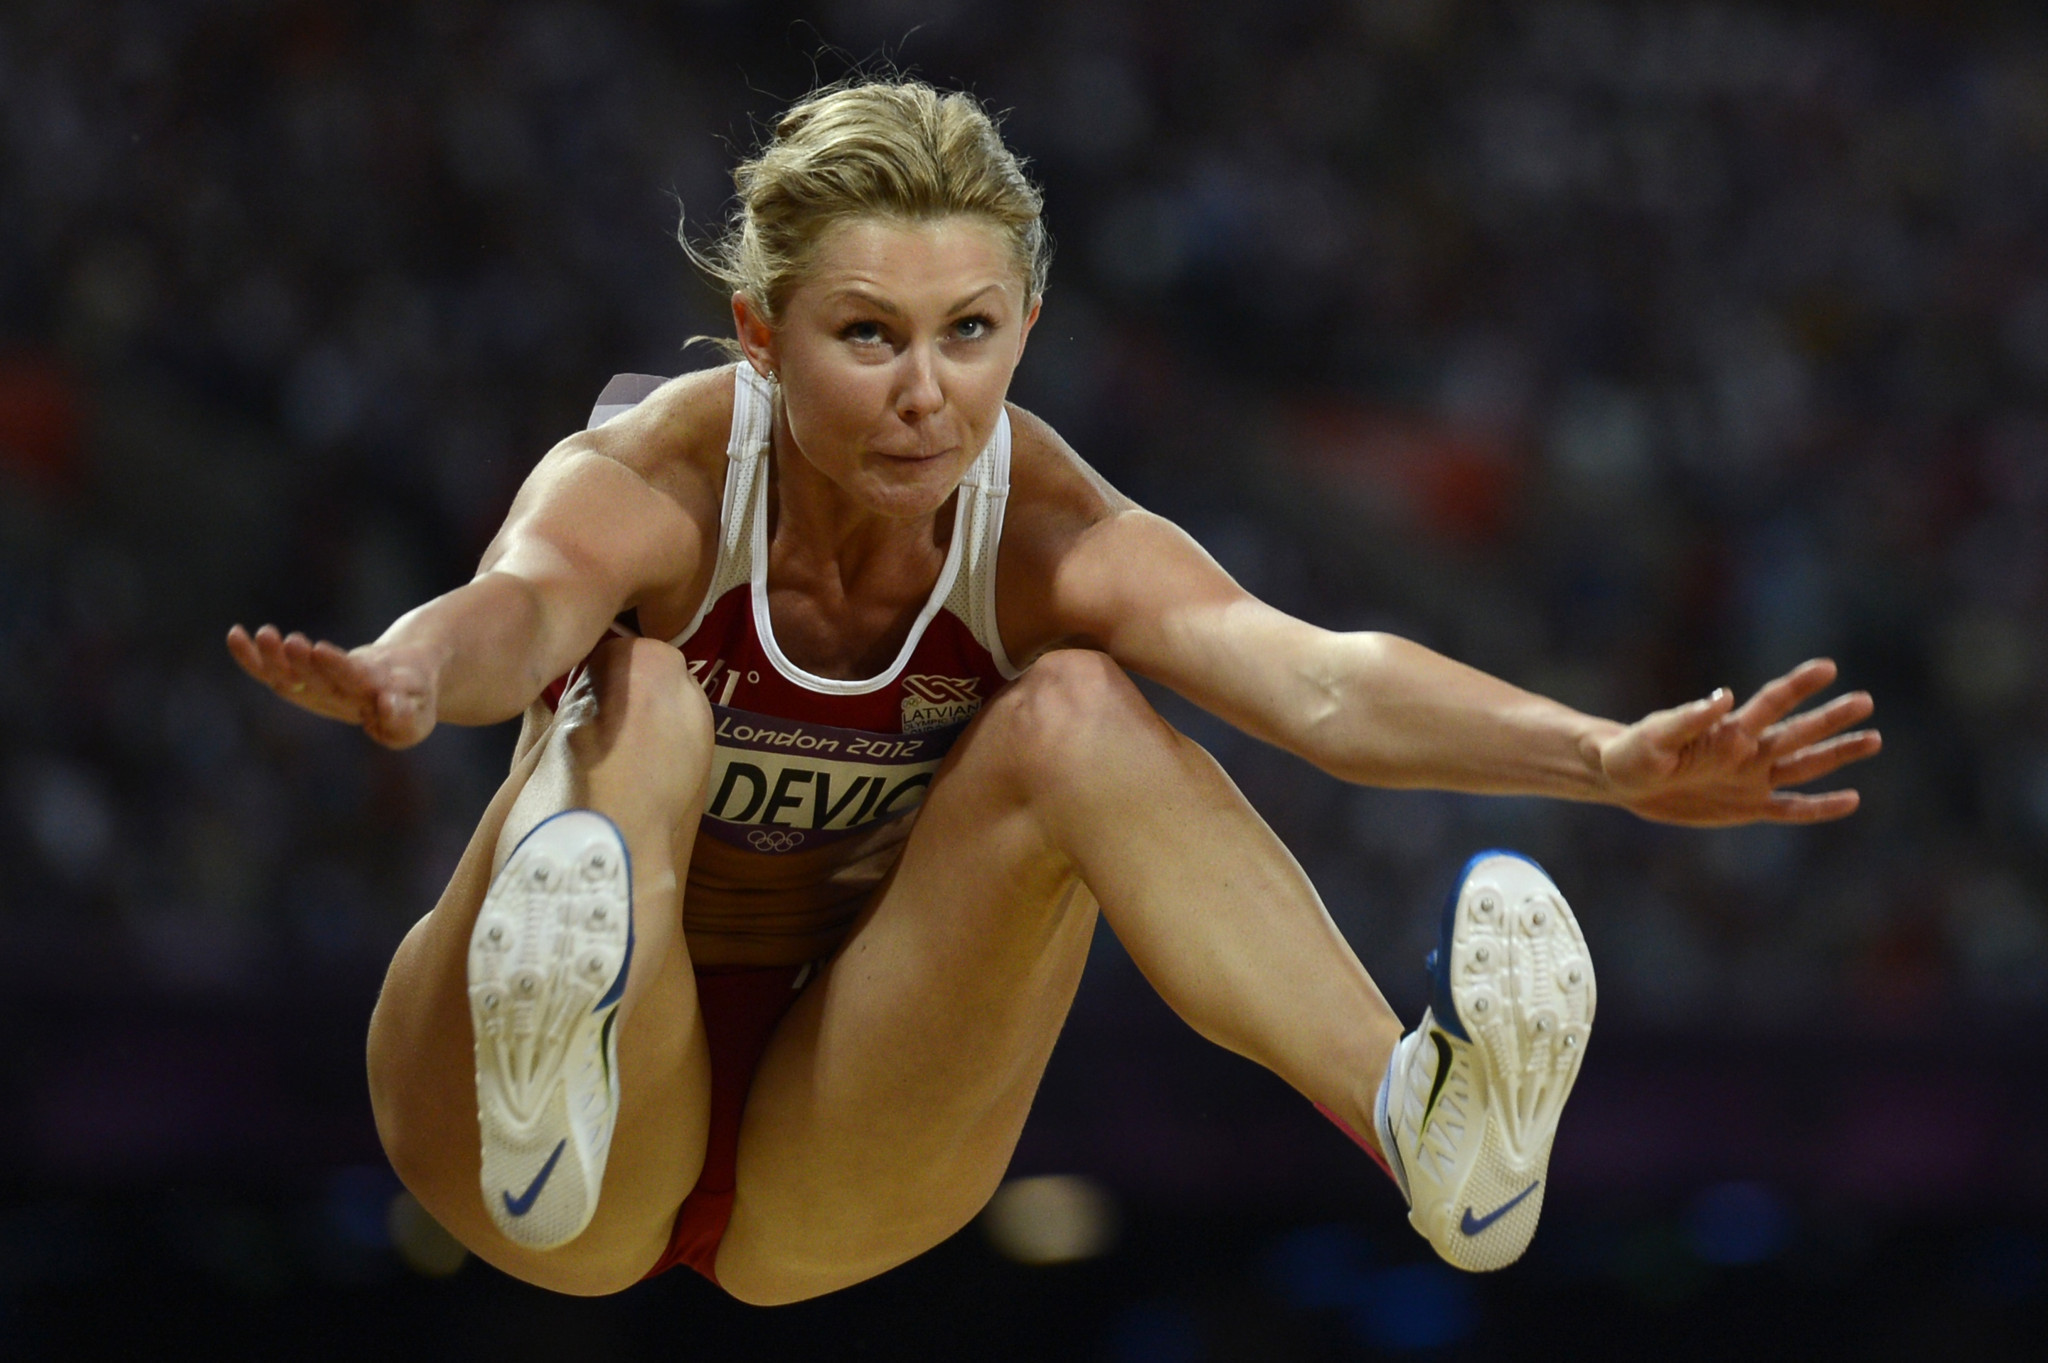 Ineta Radēviča has been banned for two years by the AIU ©Getty Images